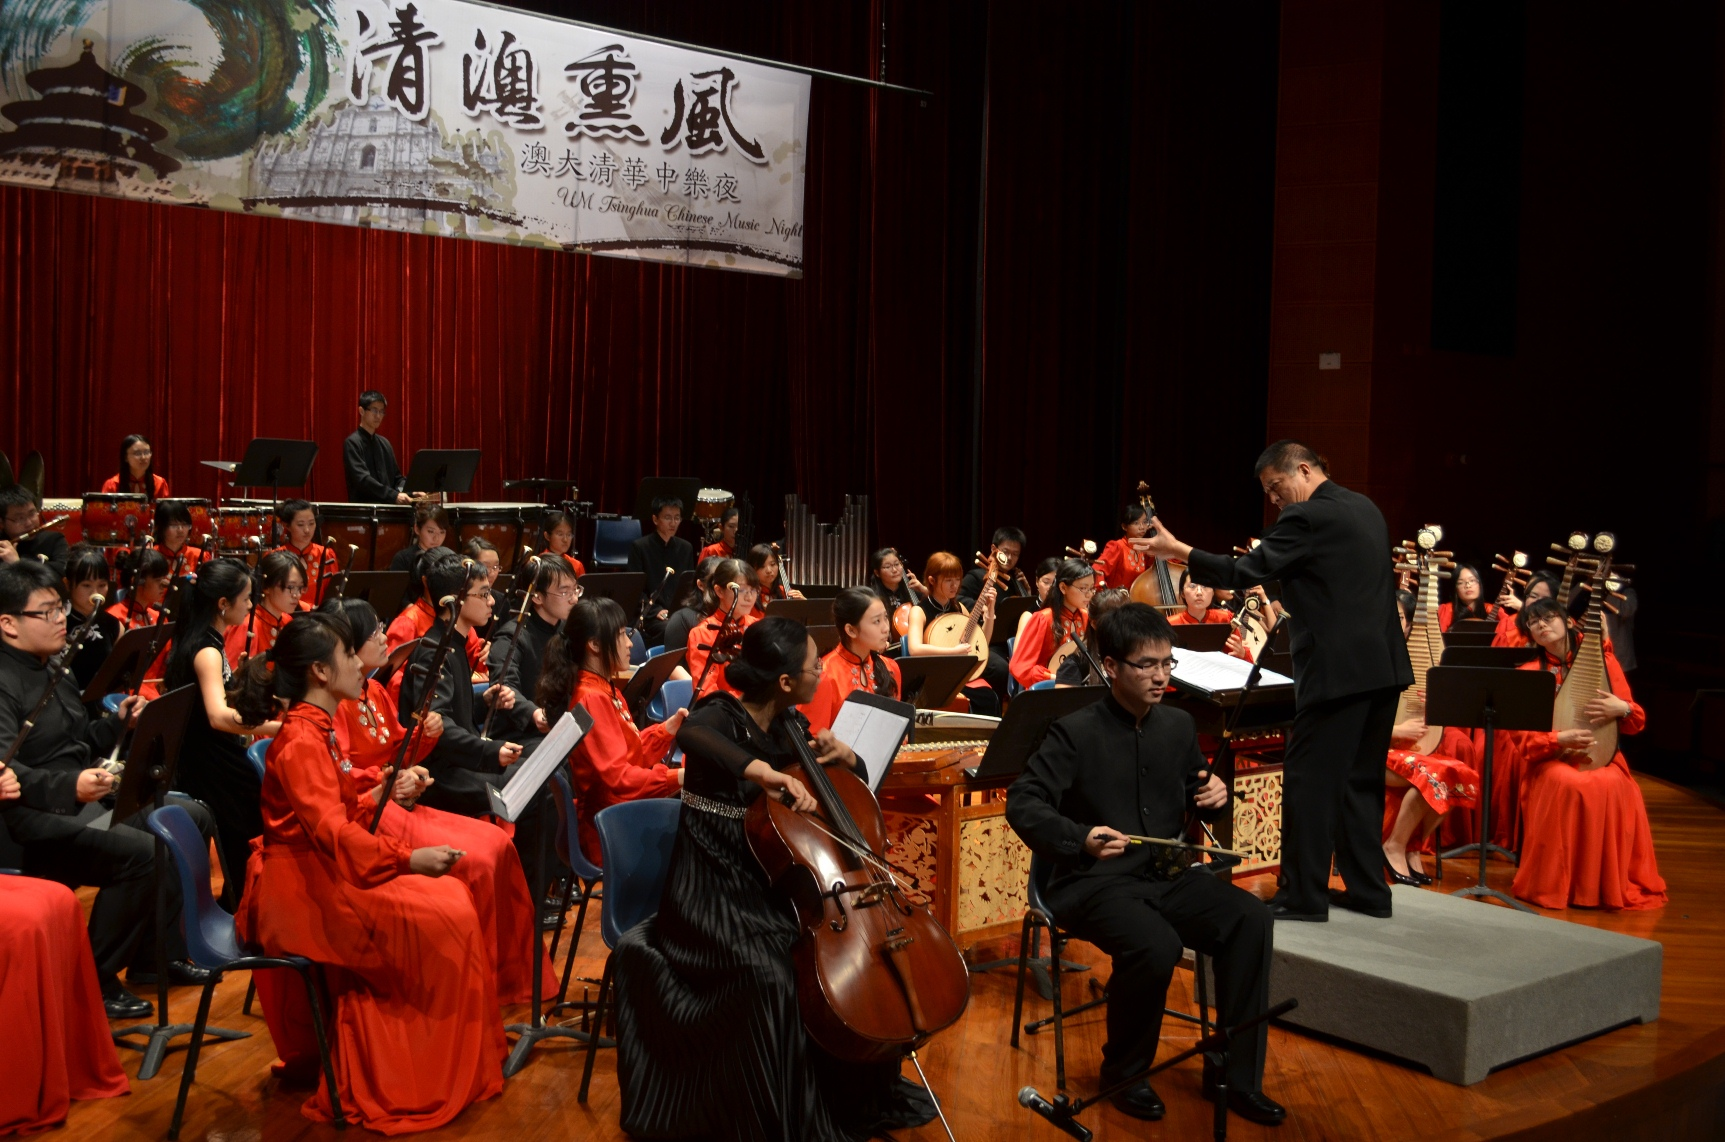 The Chinese music concert